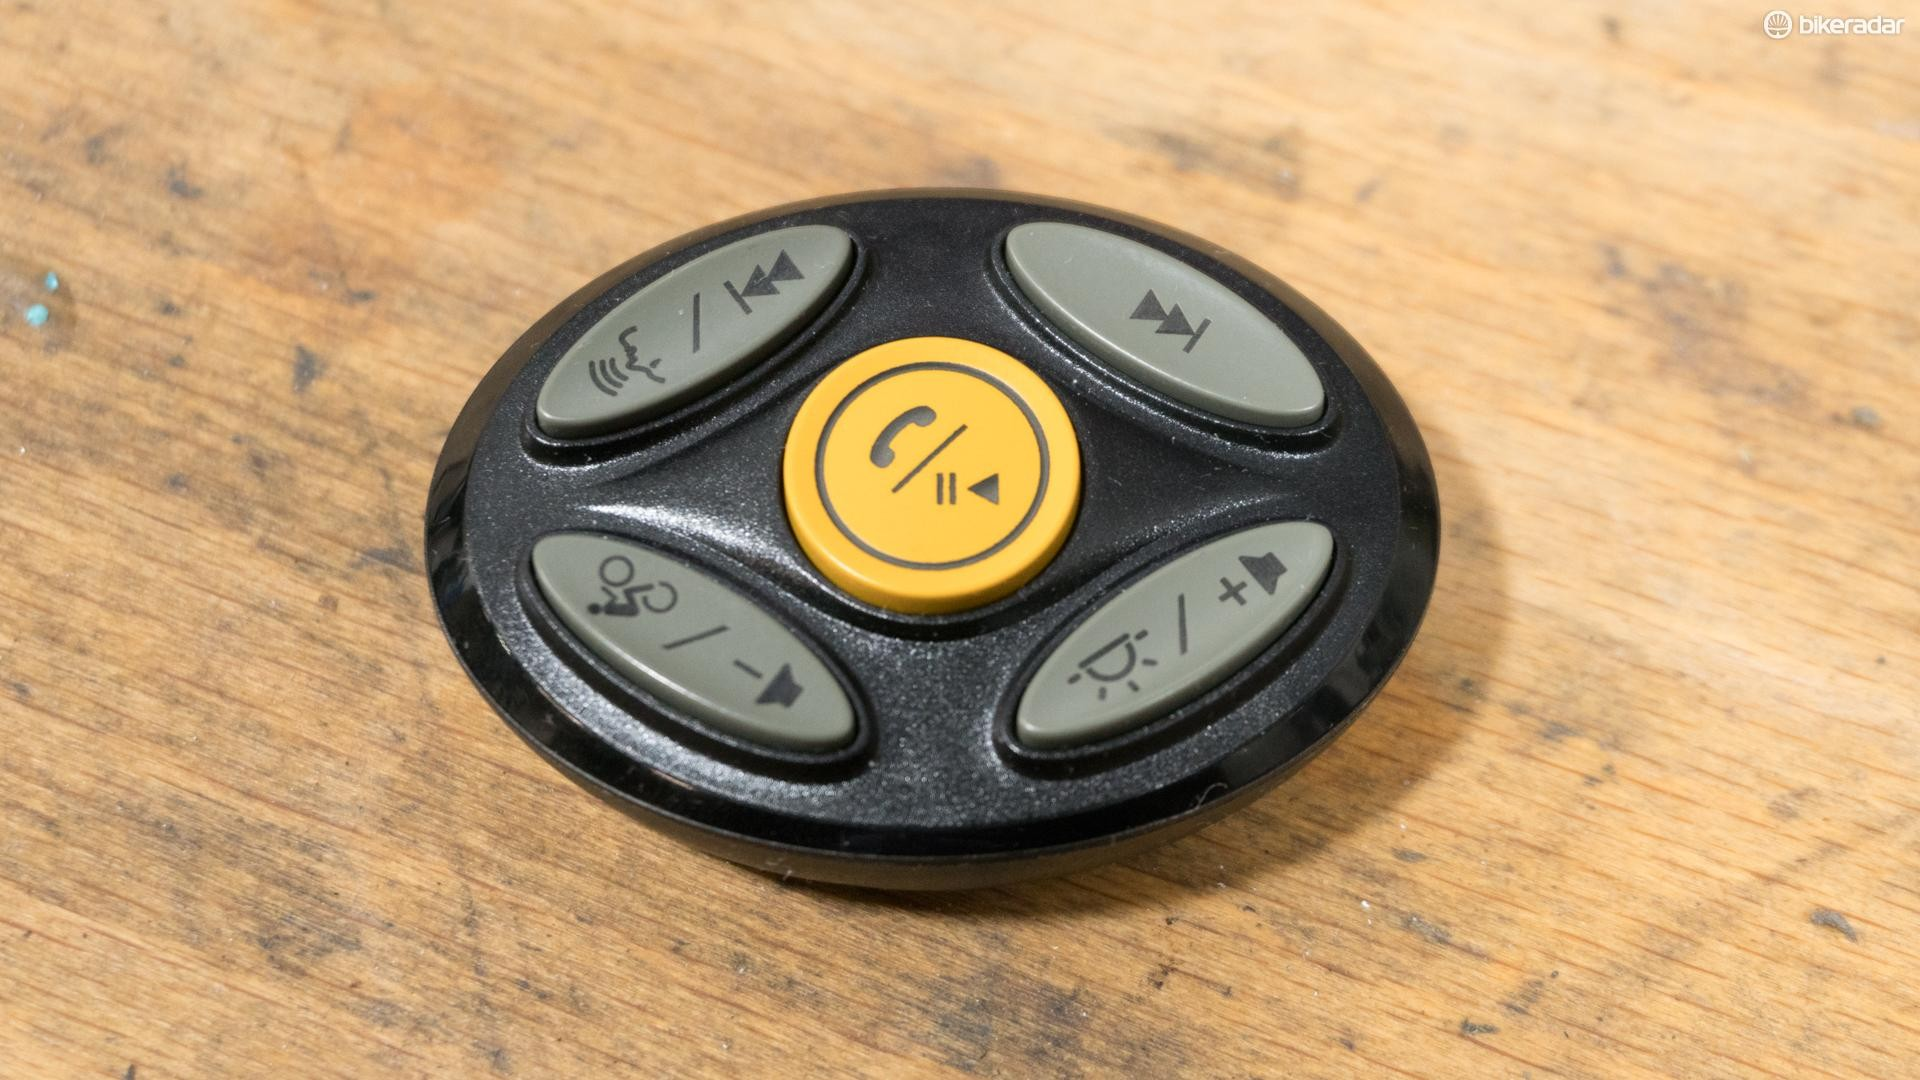 A bar-mounted remote controls the Coros's functions